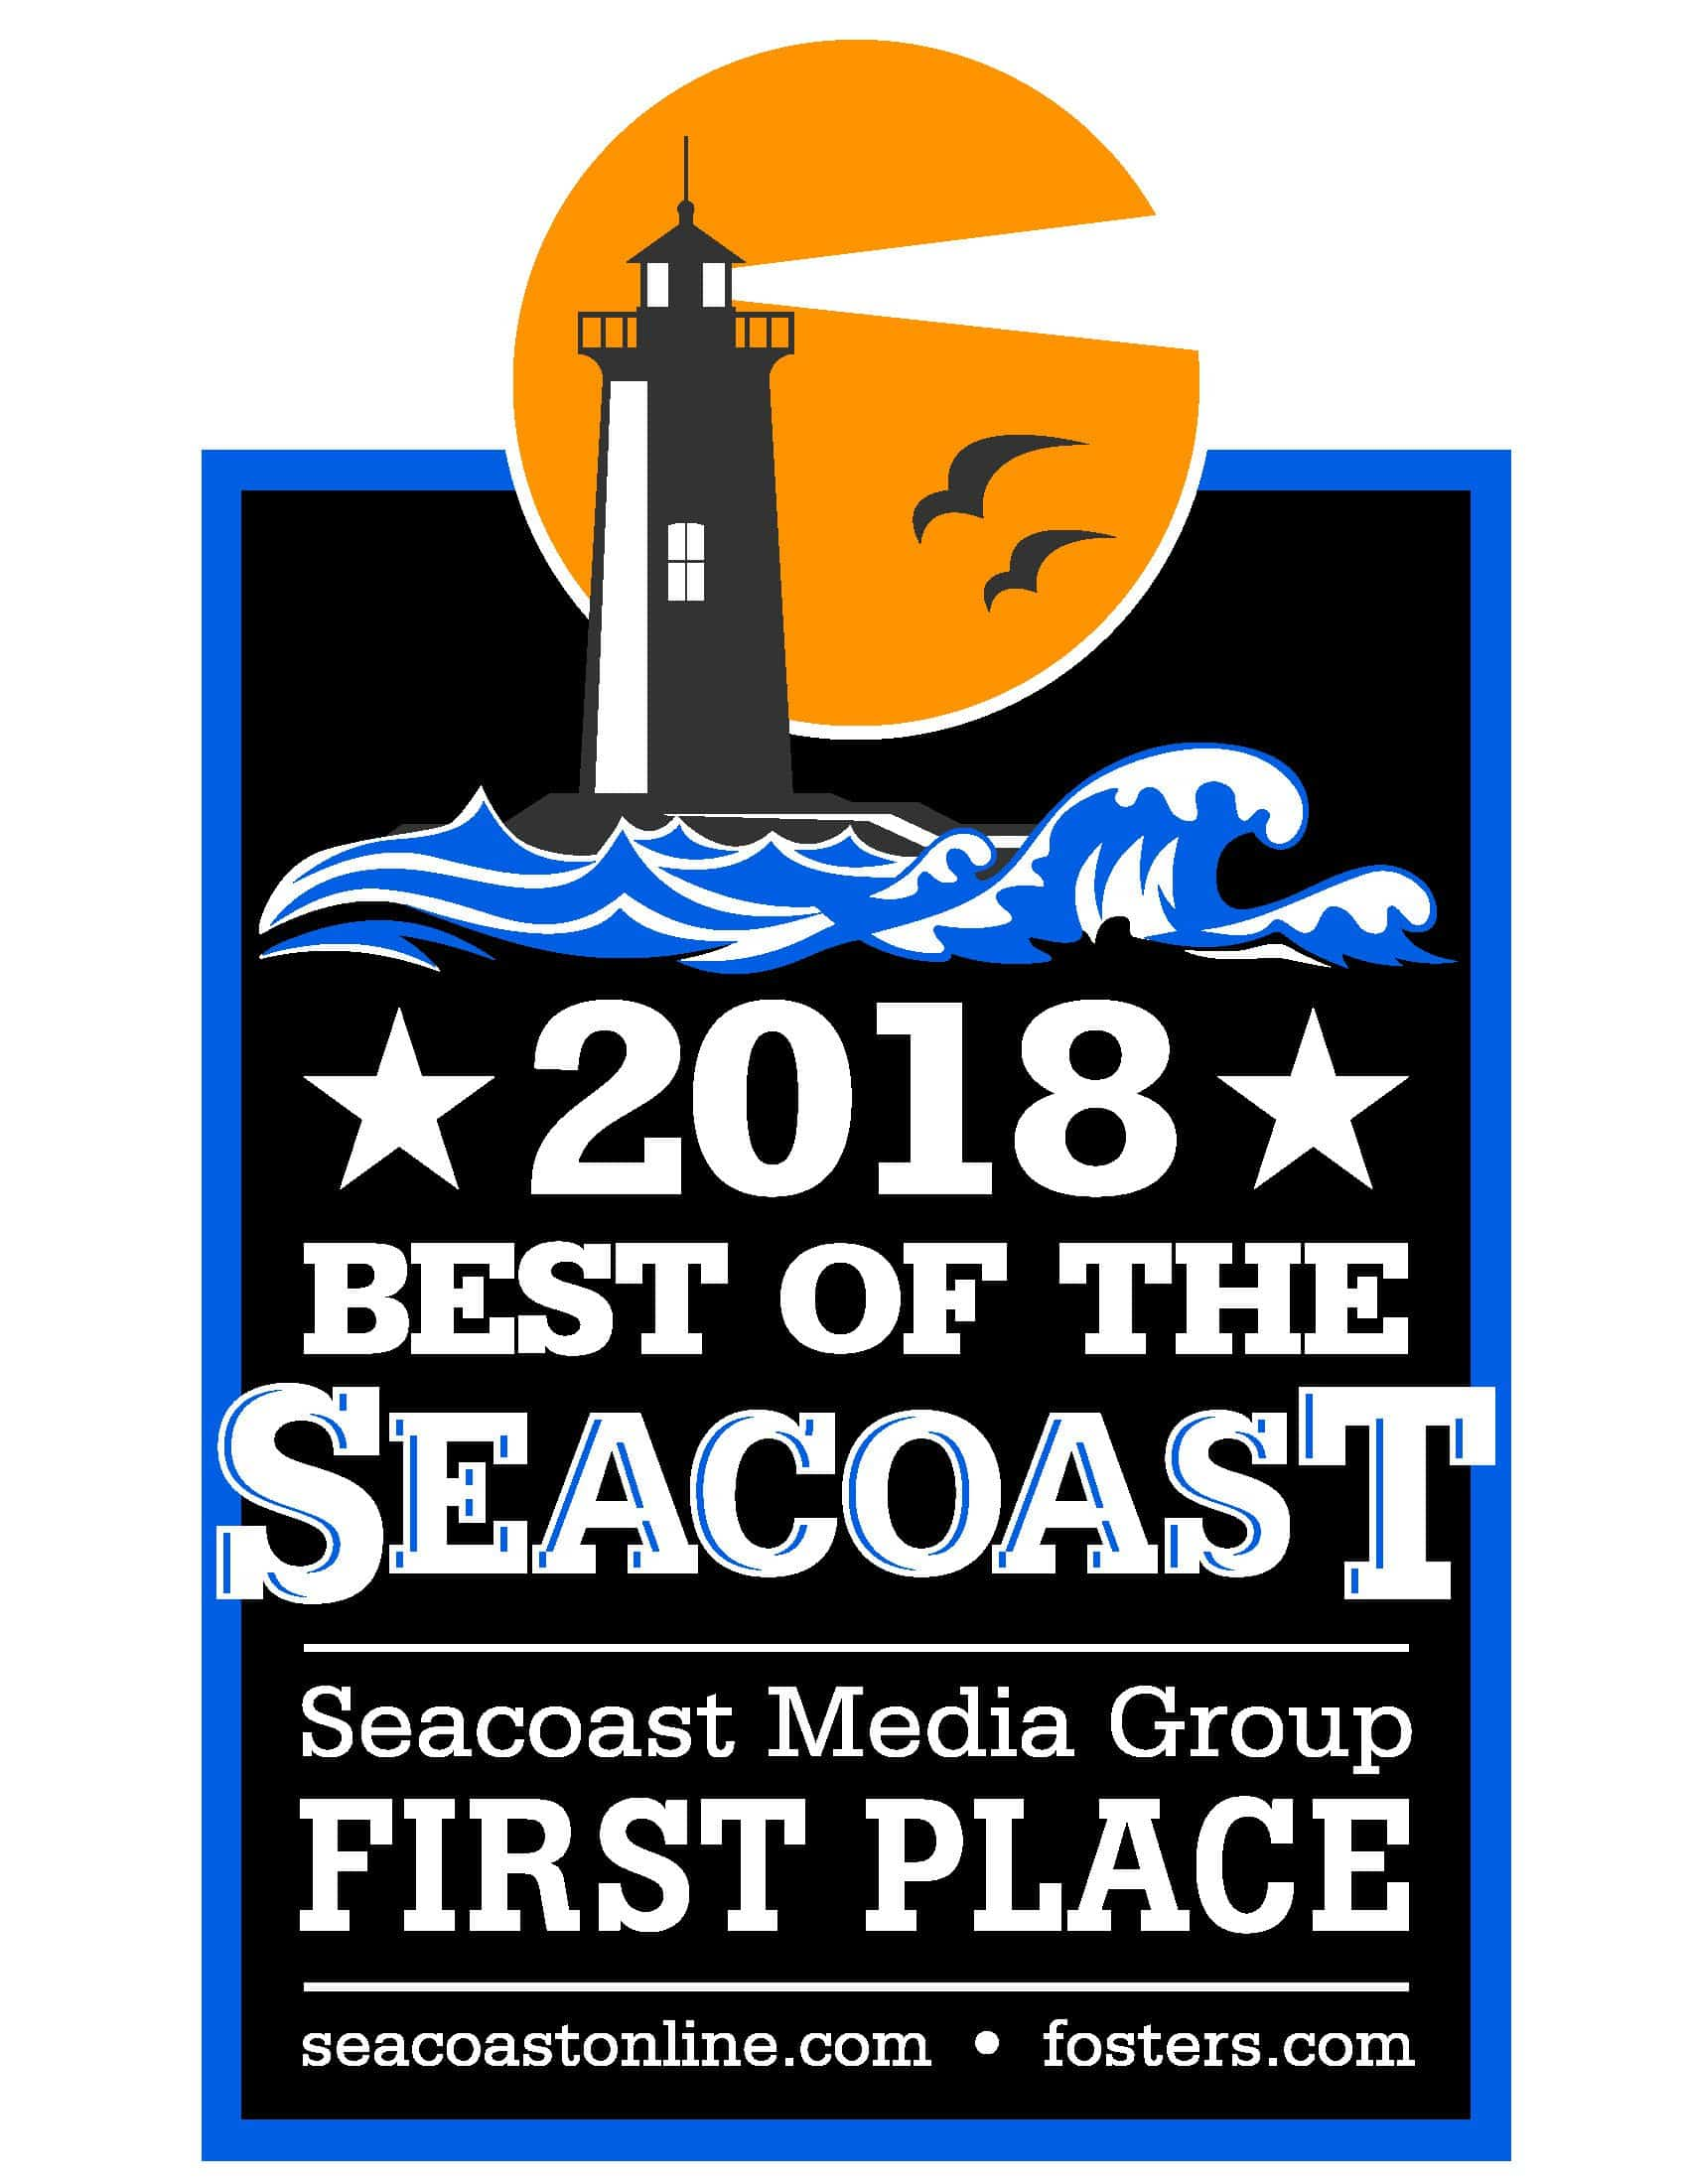 Best Of The Seacoast 2019 2018 FIRST PLACE Best of Seacoast Logo   Harbour Women's Health